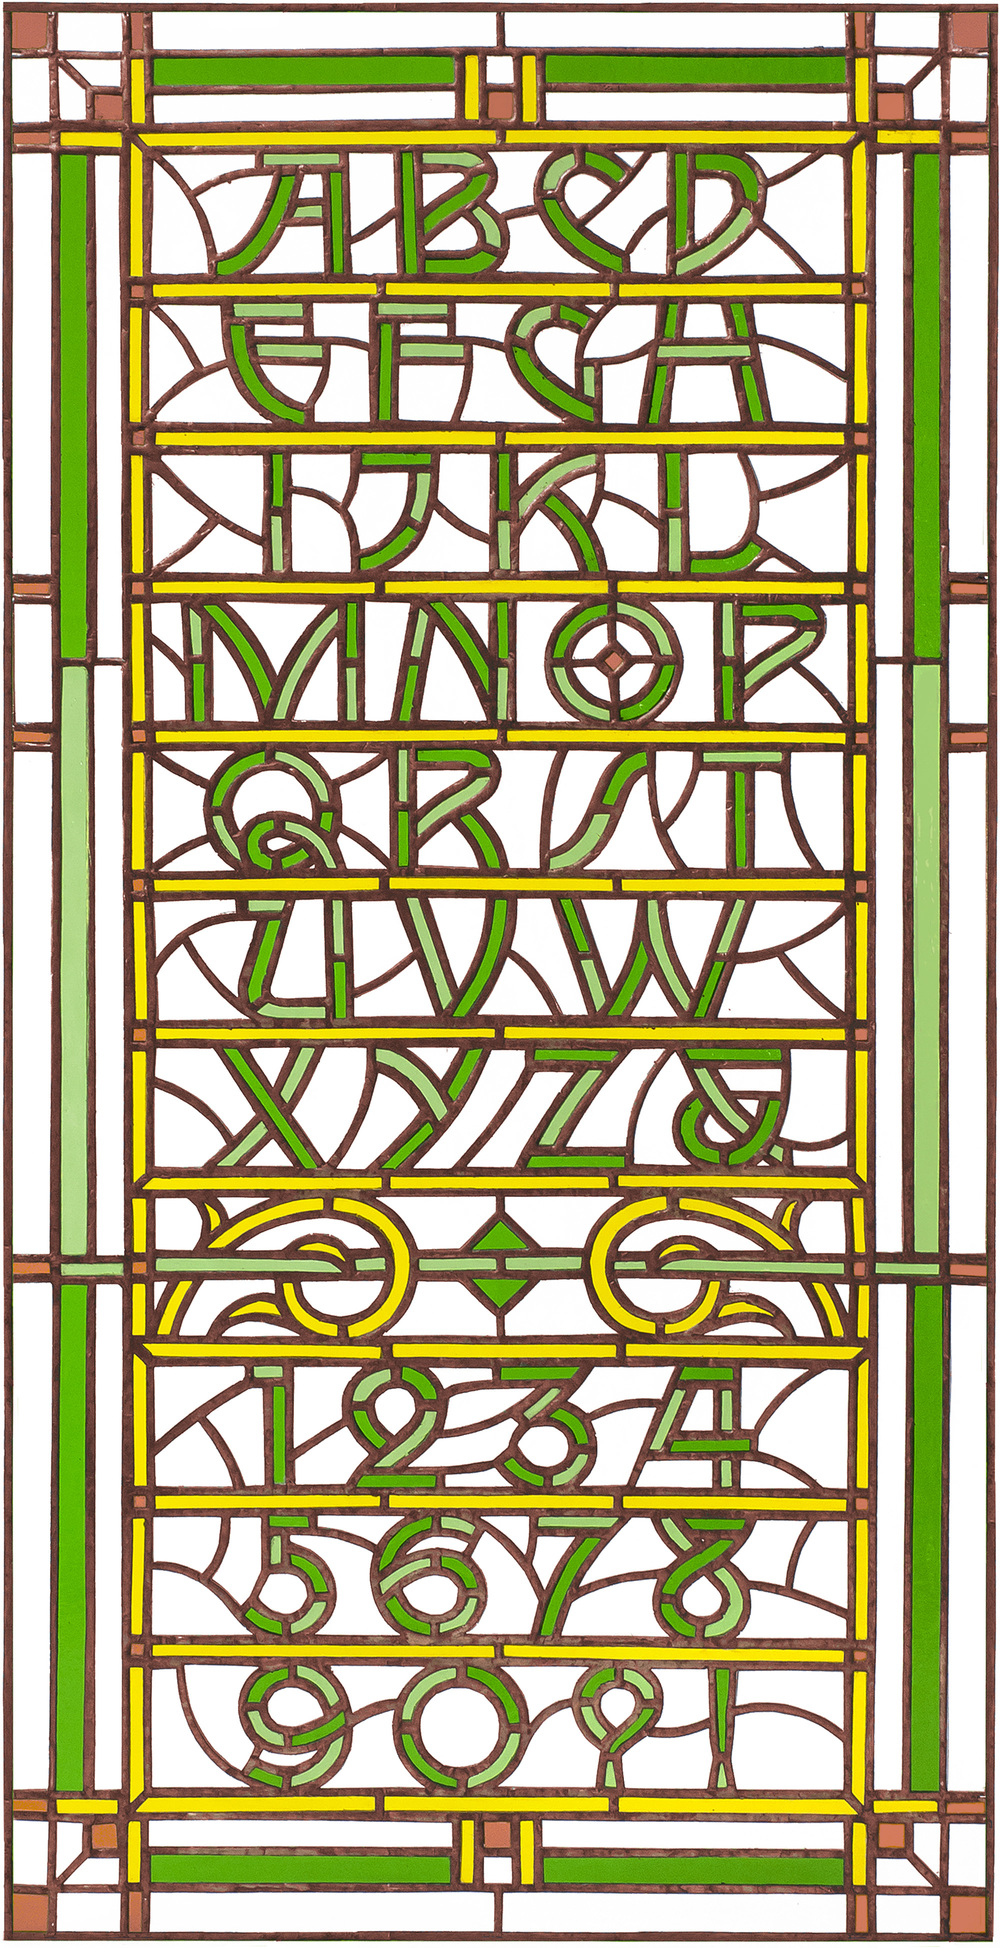 Stained Glass narrower.jpg